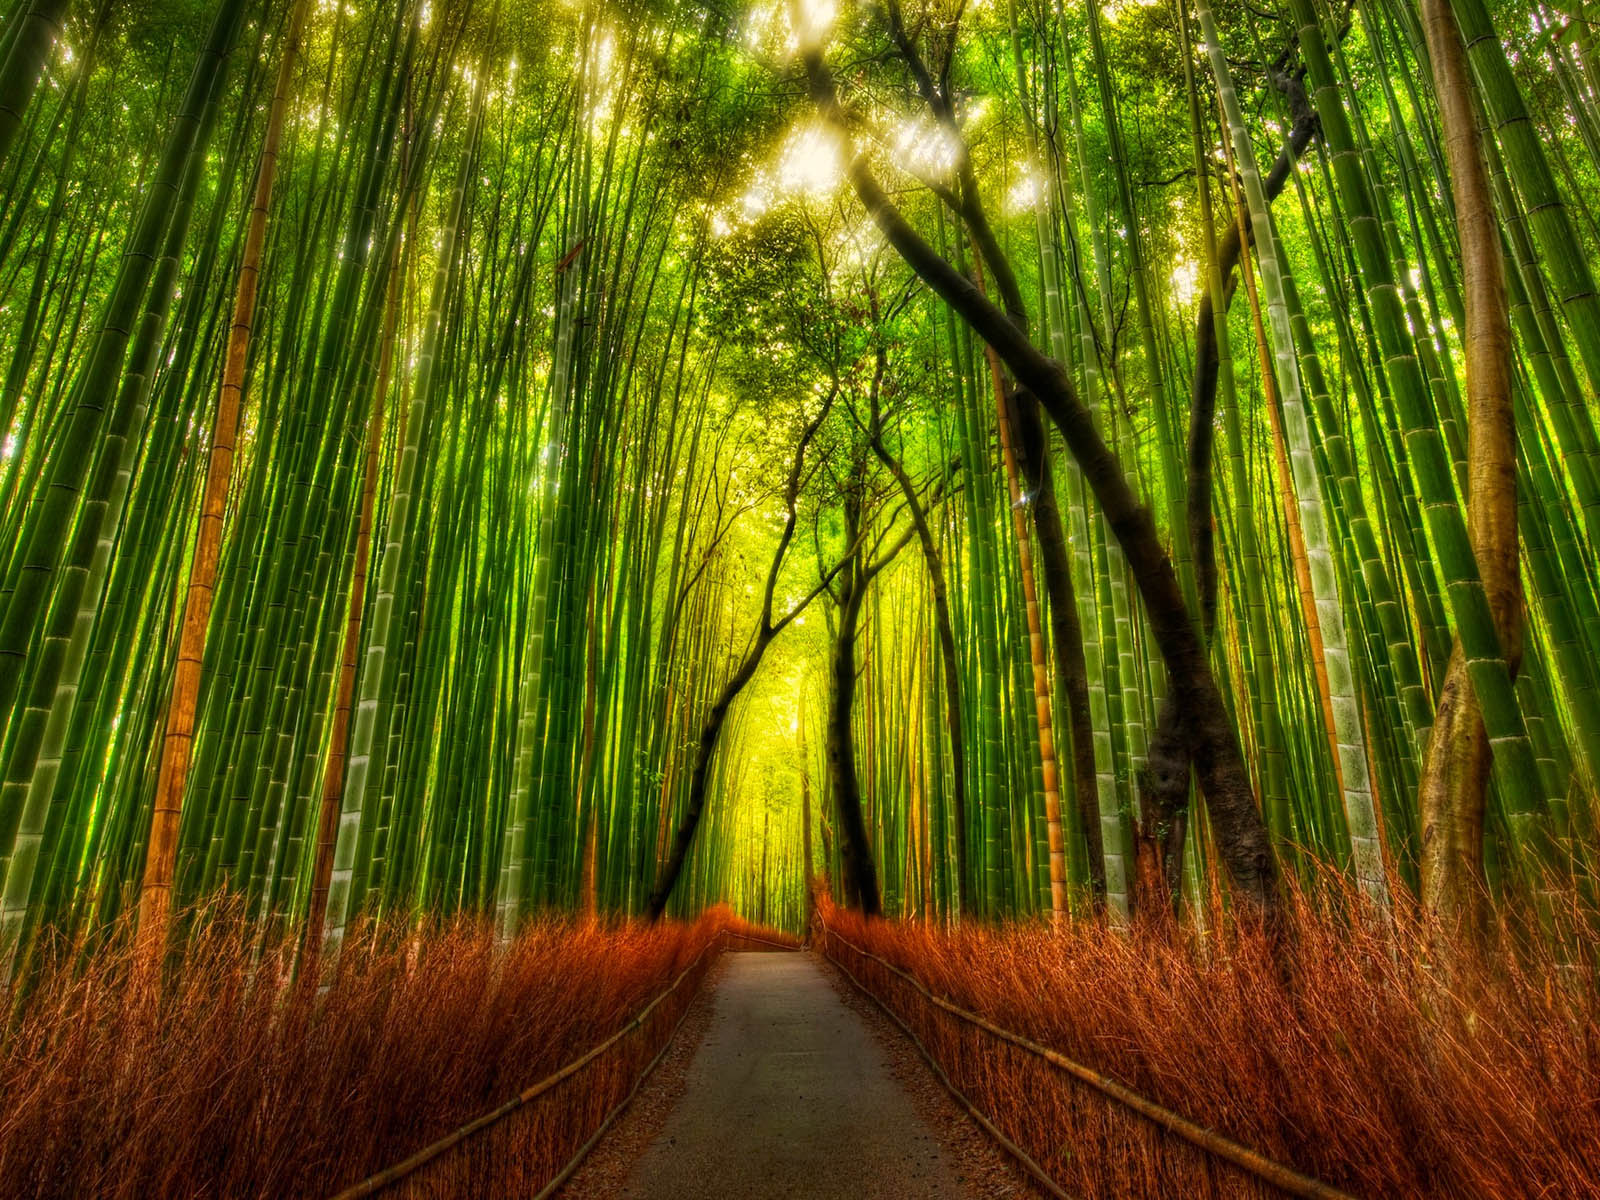 the bamboo forest wallpapers bamboo forest desktop wallpapers bamboo